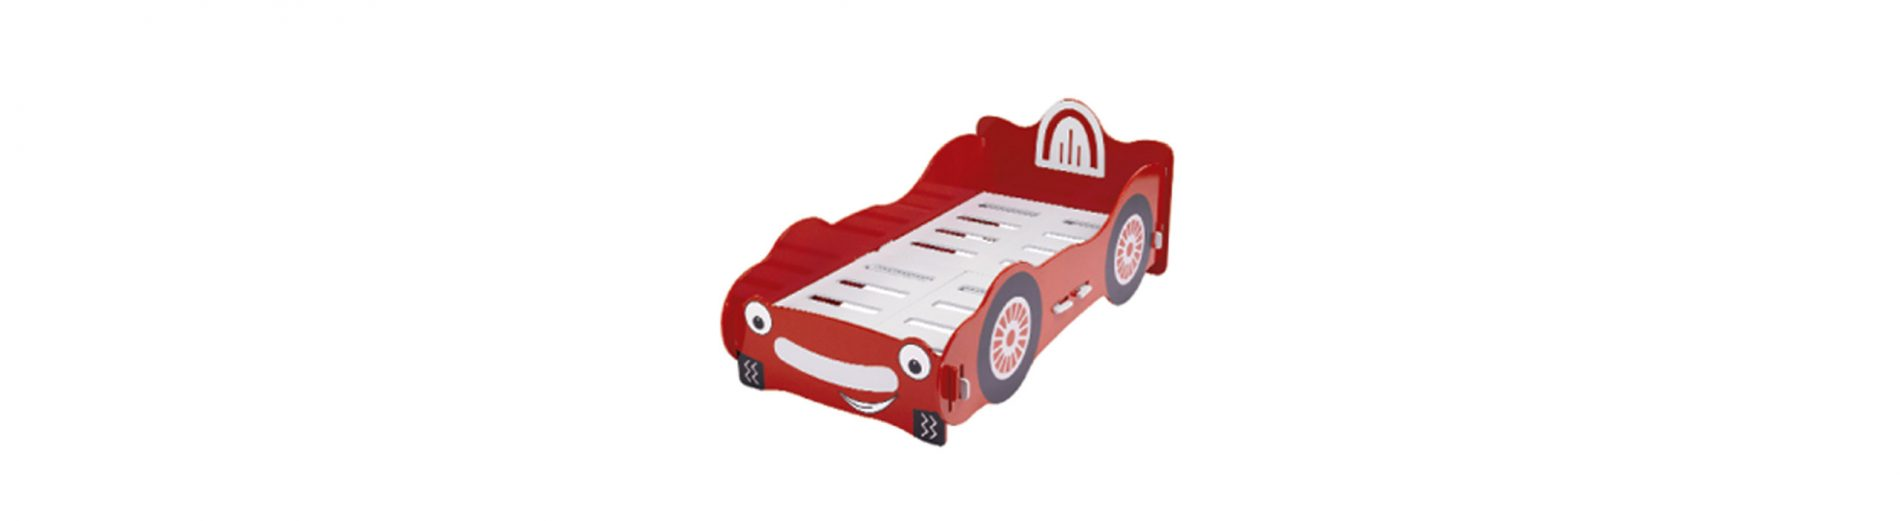 Safe Car Beds For Kids: 4 Important Features To Consider